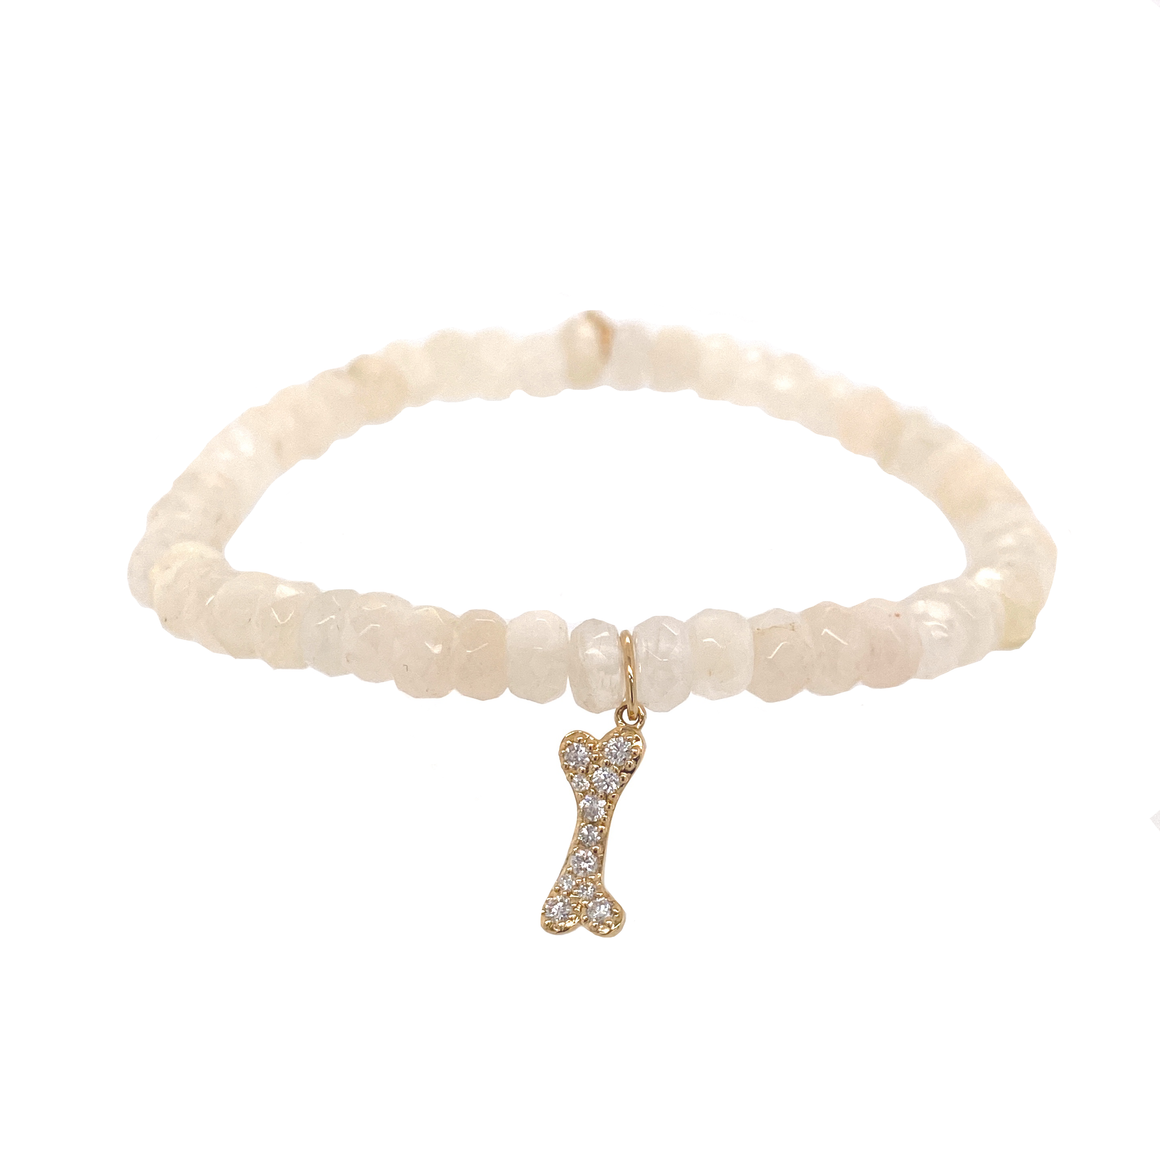 Dog Bone Charm Bracelet - Lesley Ann Jewels